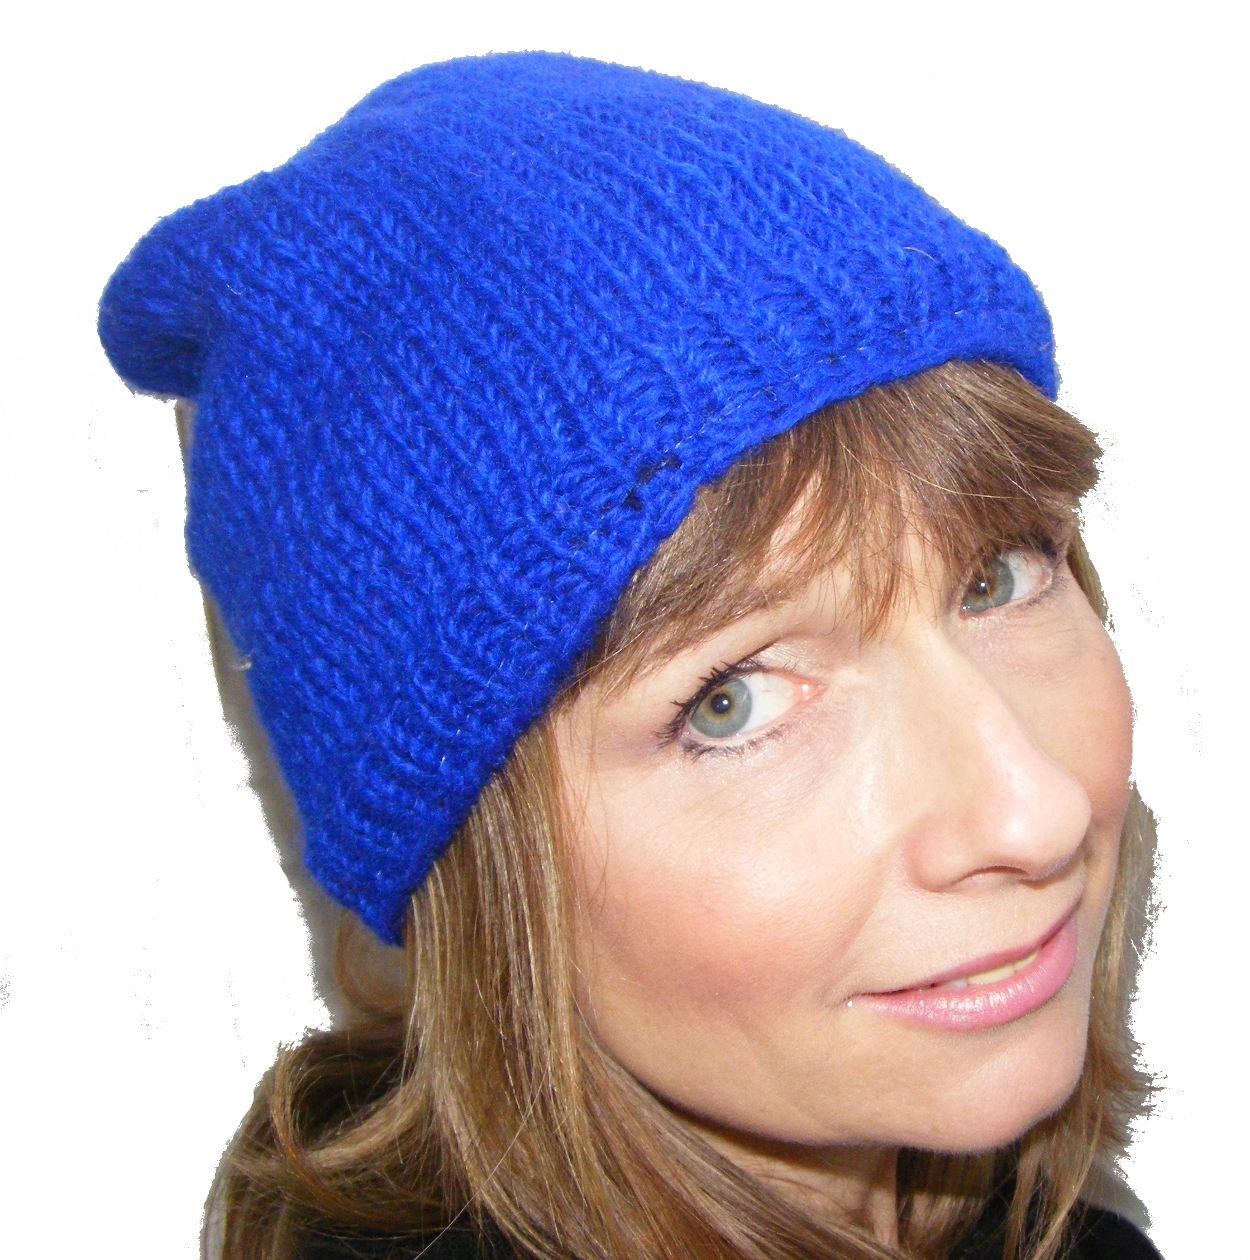 fe4b43cd0da9c Cool Handknitted Woollen Blue Slouch Beanie Hat with fleece lining ideal  for skaters and snowboarders ...